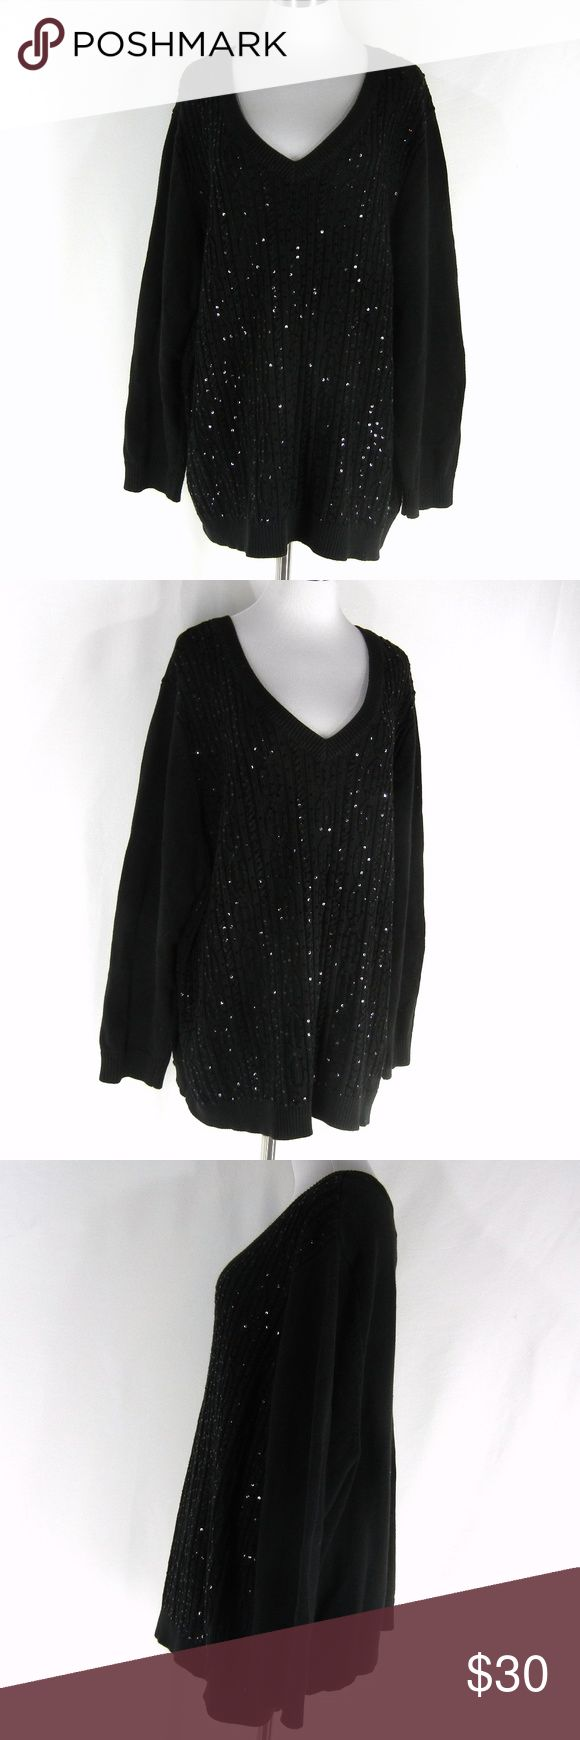 """THE QUACKER FACTORY Sequins Tunic Sweater 3X THE QUACKER FACTORY sparkly sequins tunic sweater in solid black.  Vee neckline, cable knit design.  Excellent condition with no flaws.  100% cotton, machine wash.  Tagged size 3X, please check measurements to determine fit.  56"""" chest, 56"""" waist, 52"""" hips, 29"""" long.  Put your sparkle in motion--this sweater shimmers as you move! The cable knitting on the front of the top is encrusted with delightful tonal sequins. Quacker Factory Sweaters V-Necks"""